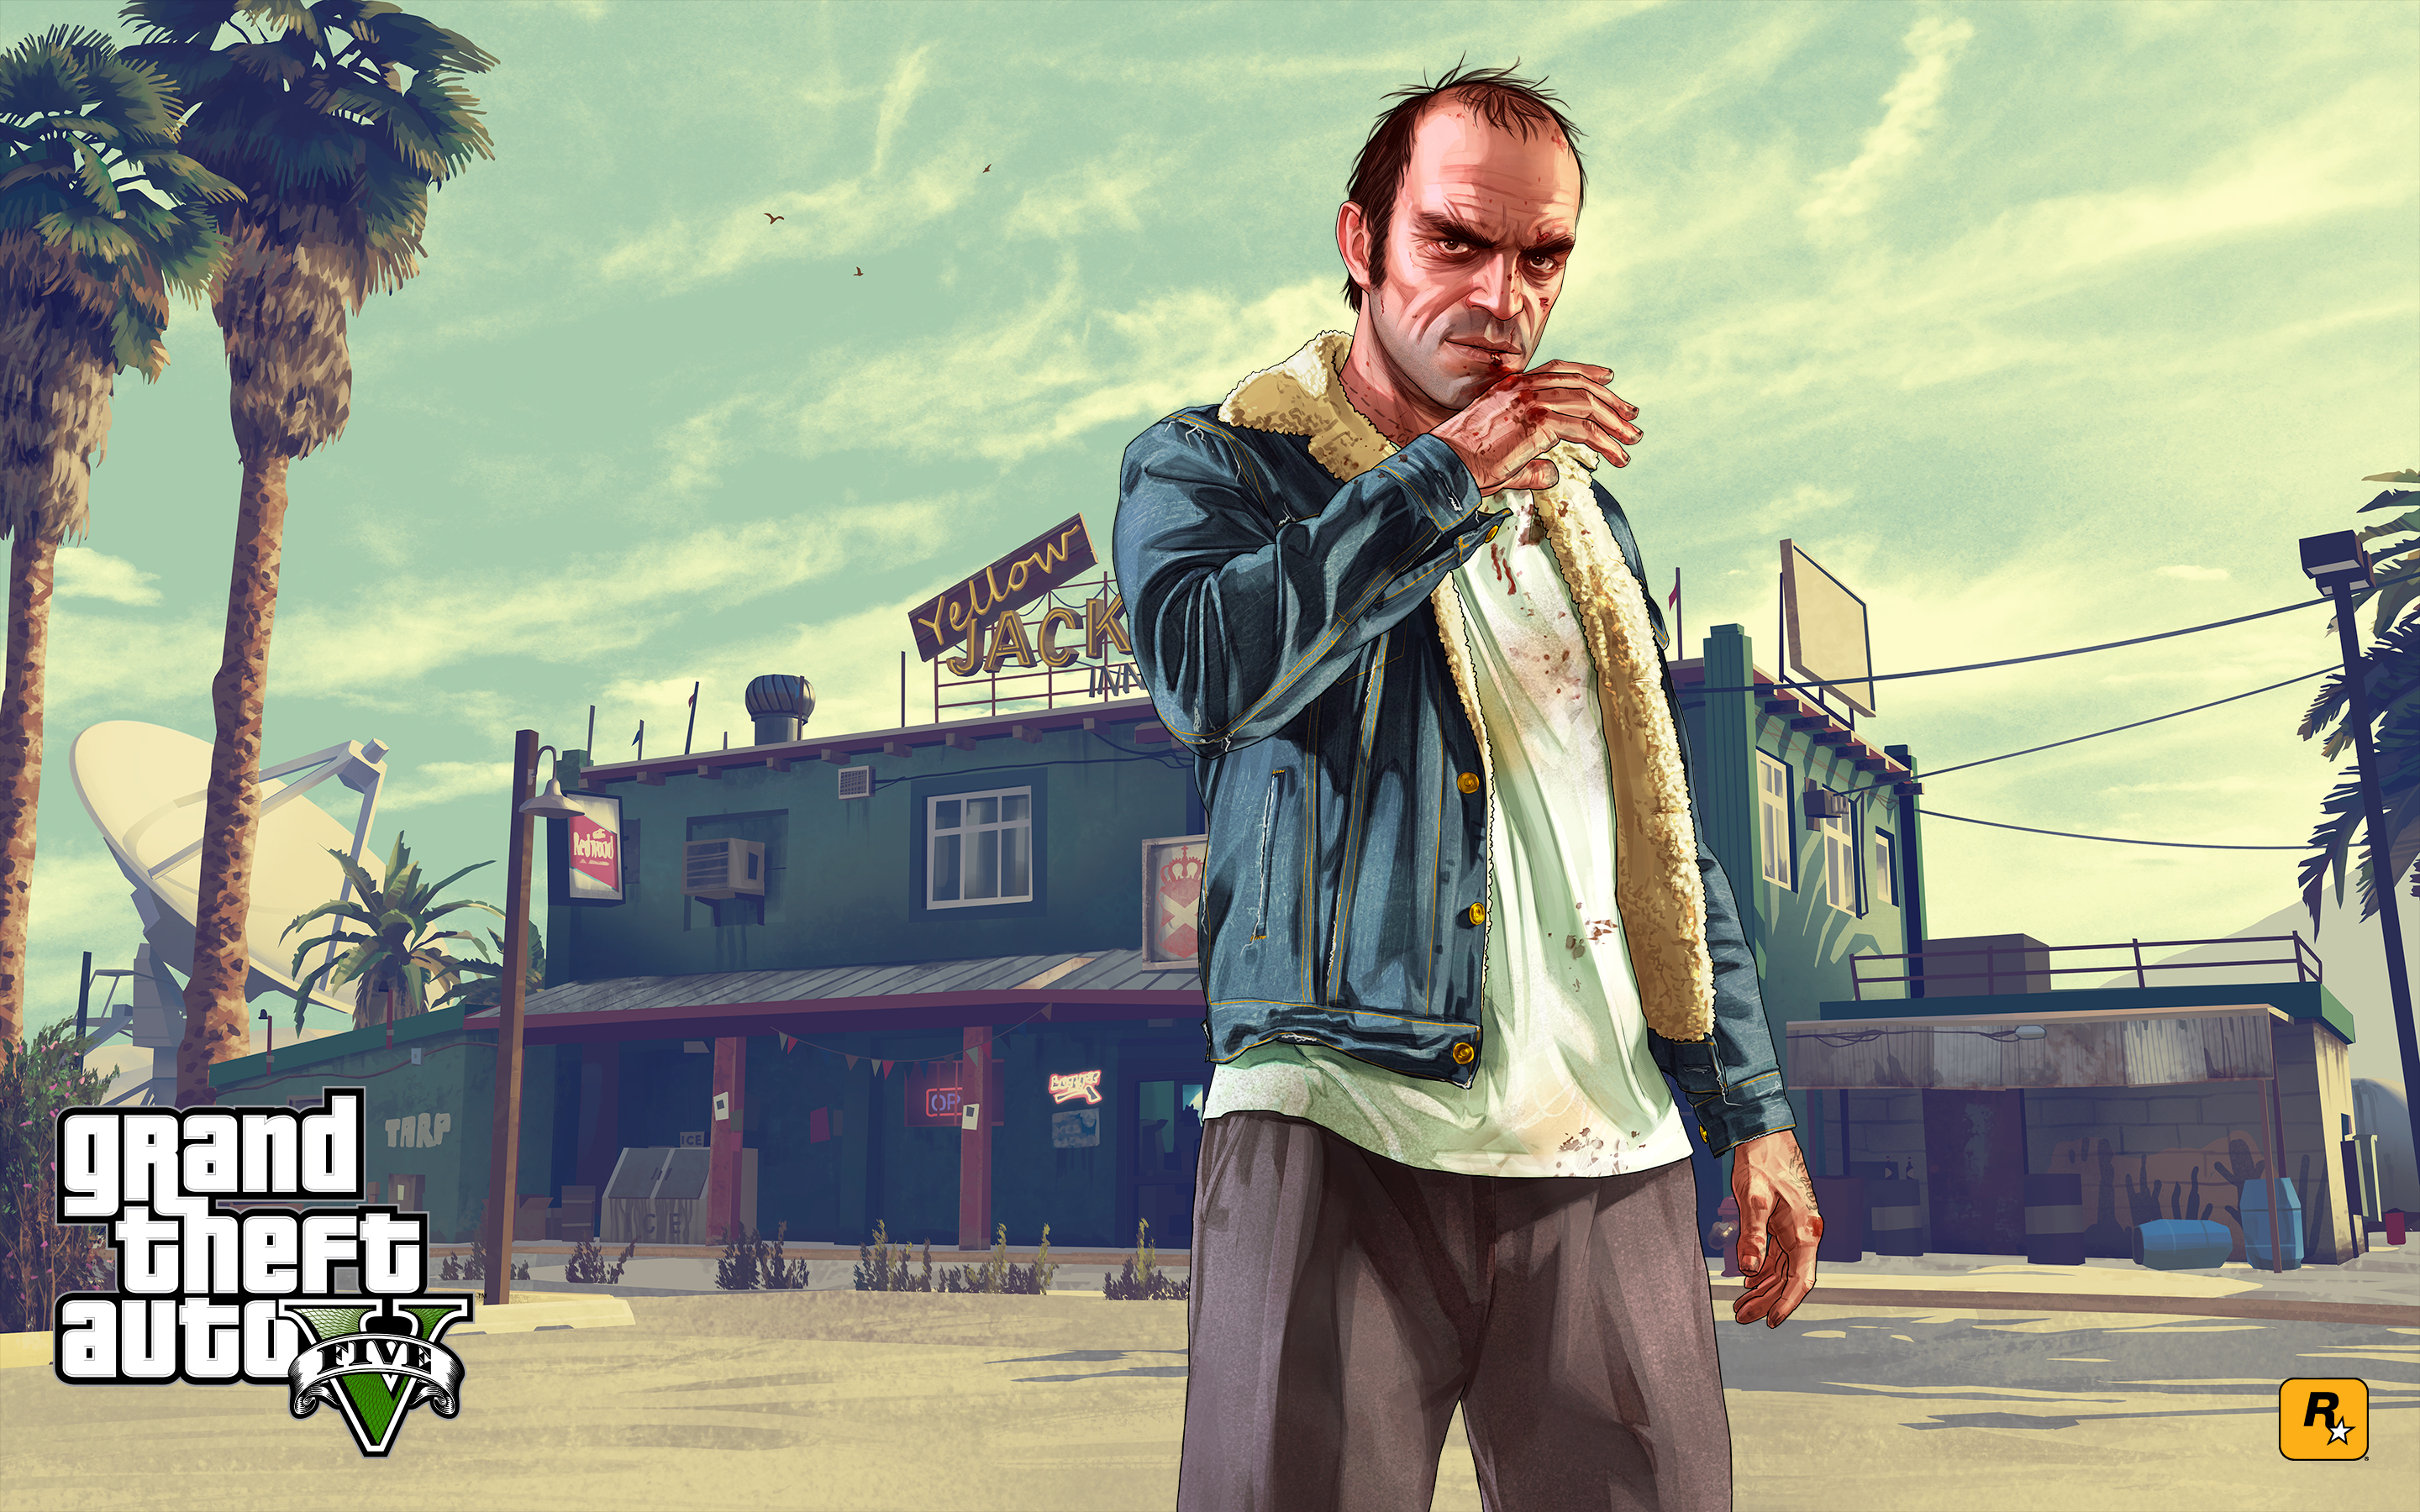 Gta 5 wallpapers pictures images for Gta v bedroom wallpaper